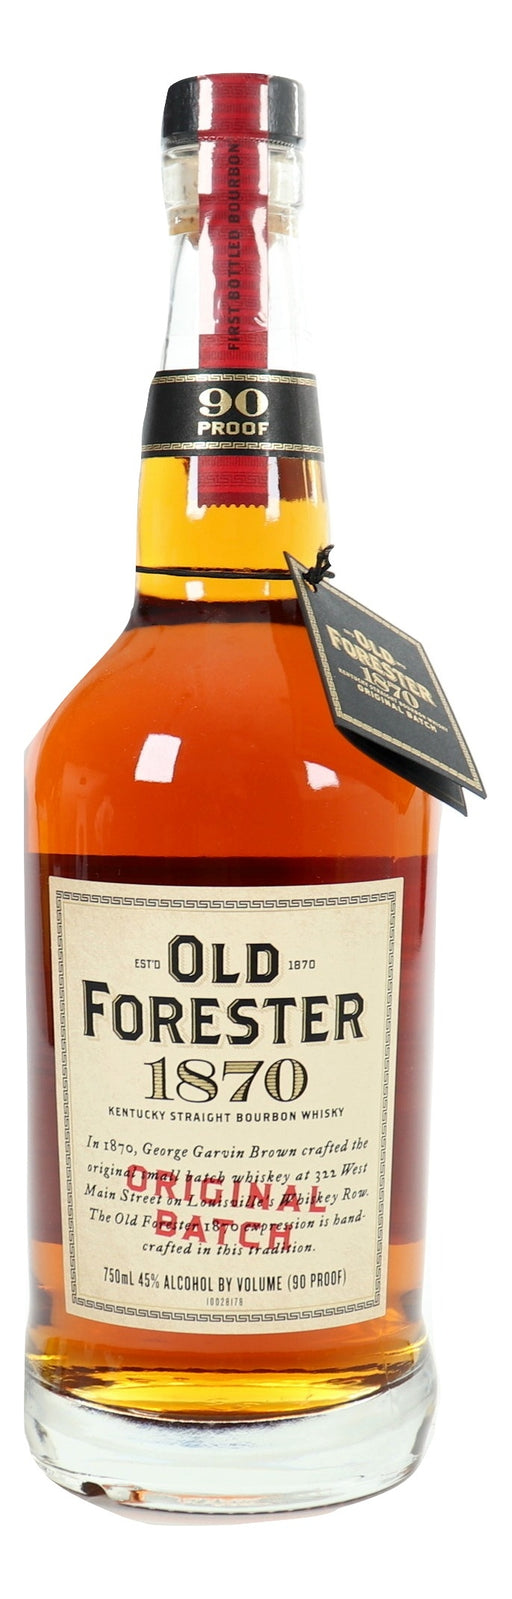 Old Forester 1870 Original Batch For Sale - NativeSpiritsOnline